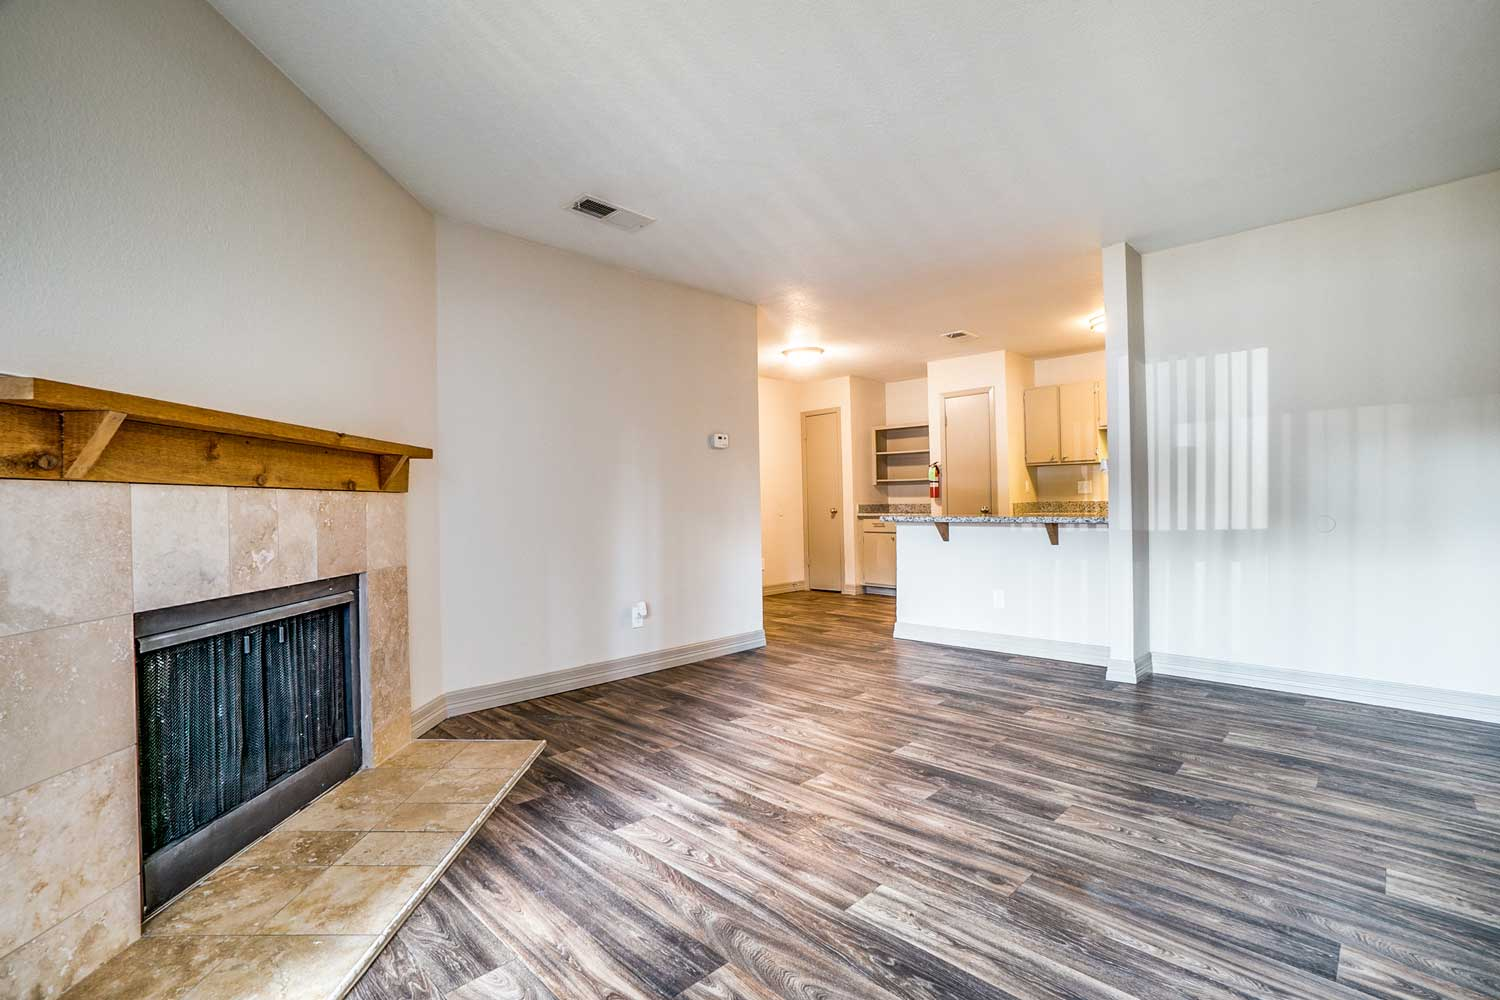 Vaulted Ceilings at Riviera Apartments in Dallas, Texas